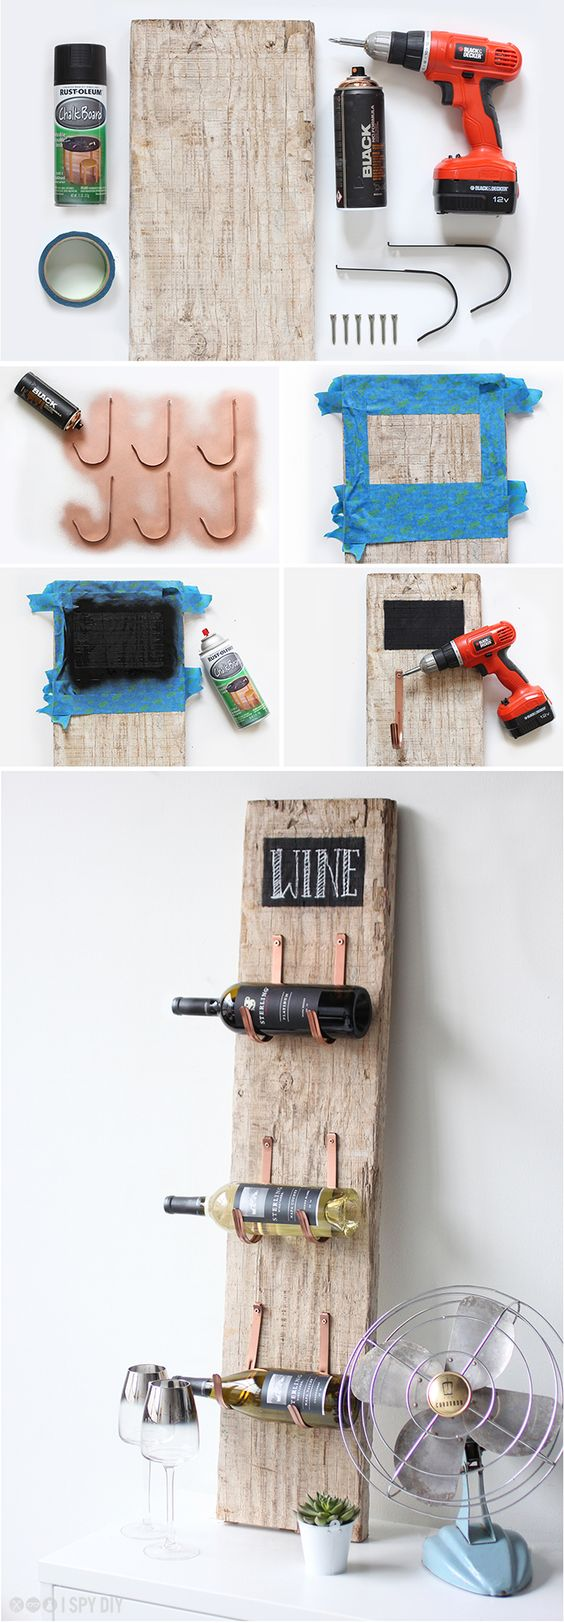 3 Awesome DIY Gifts for Mom